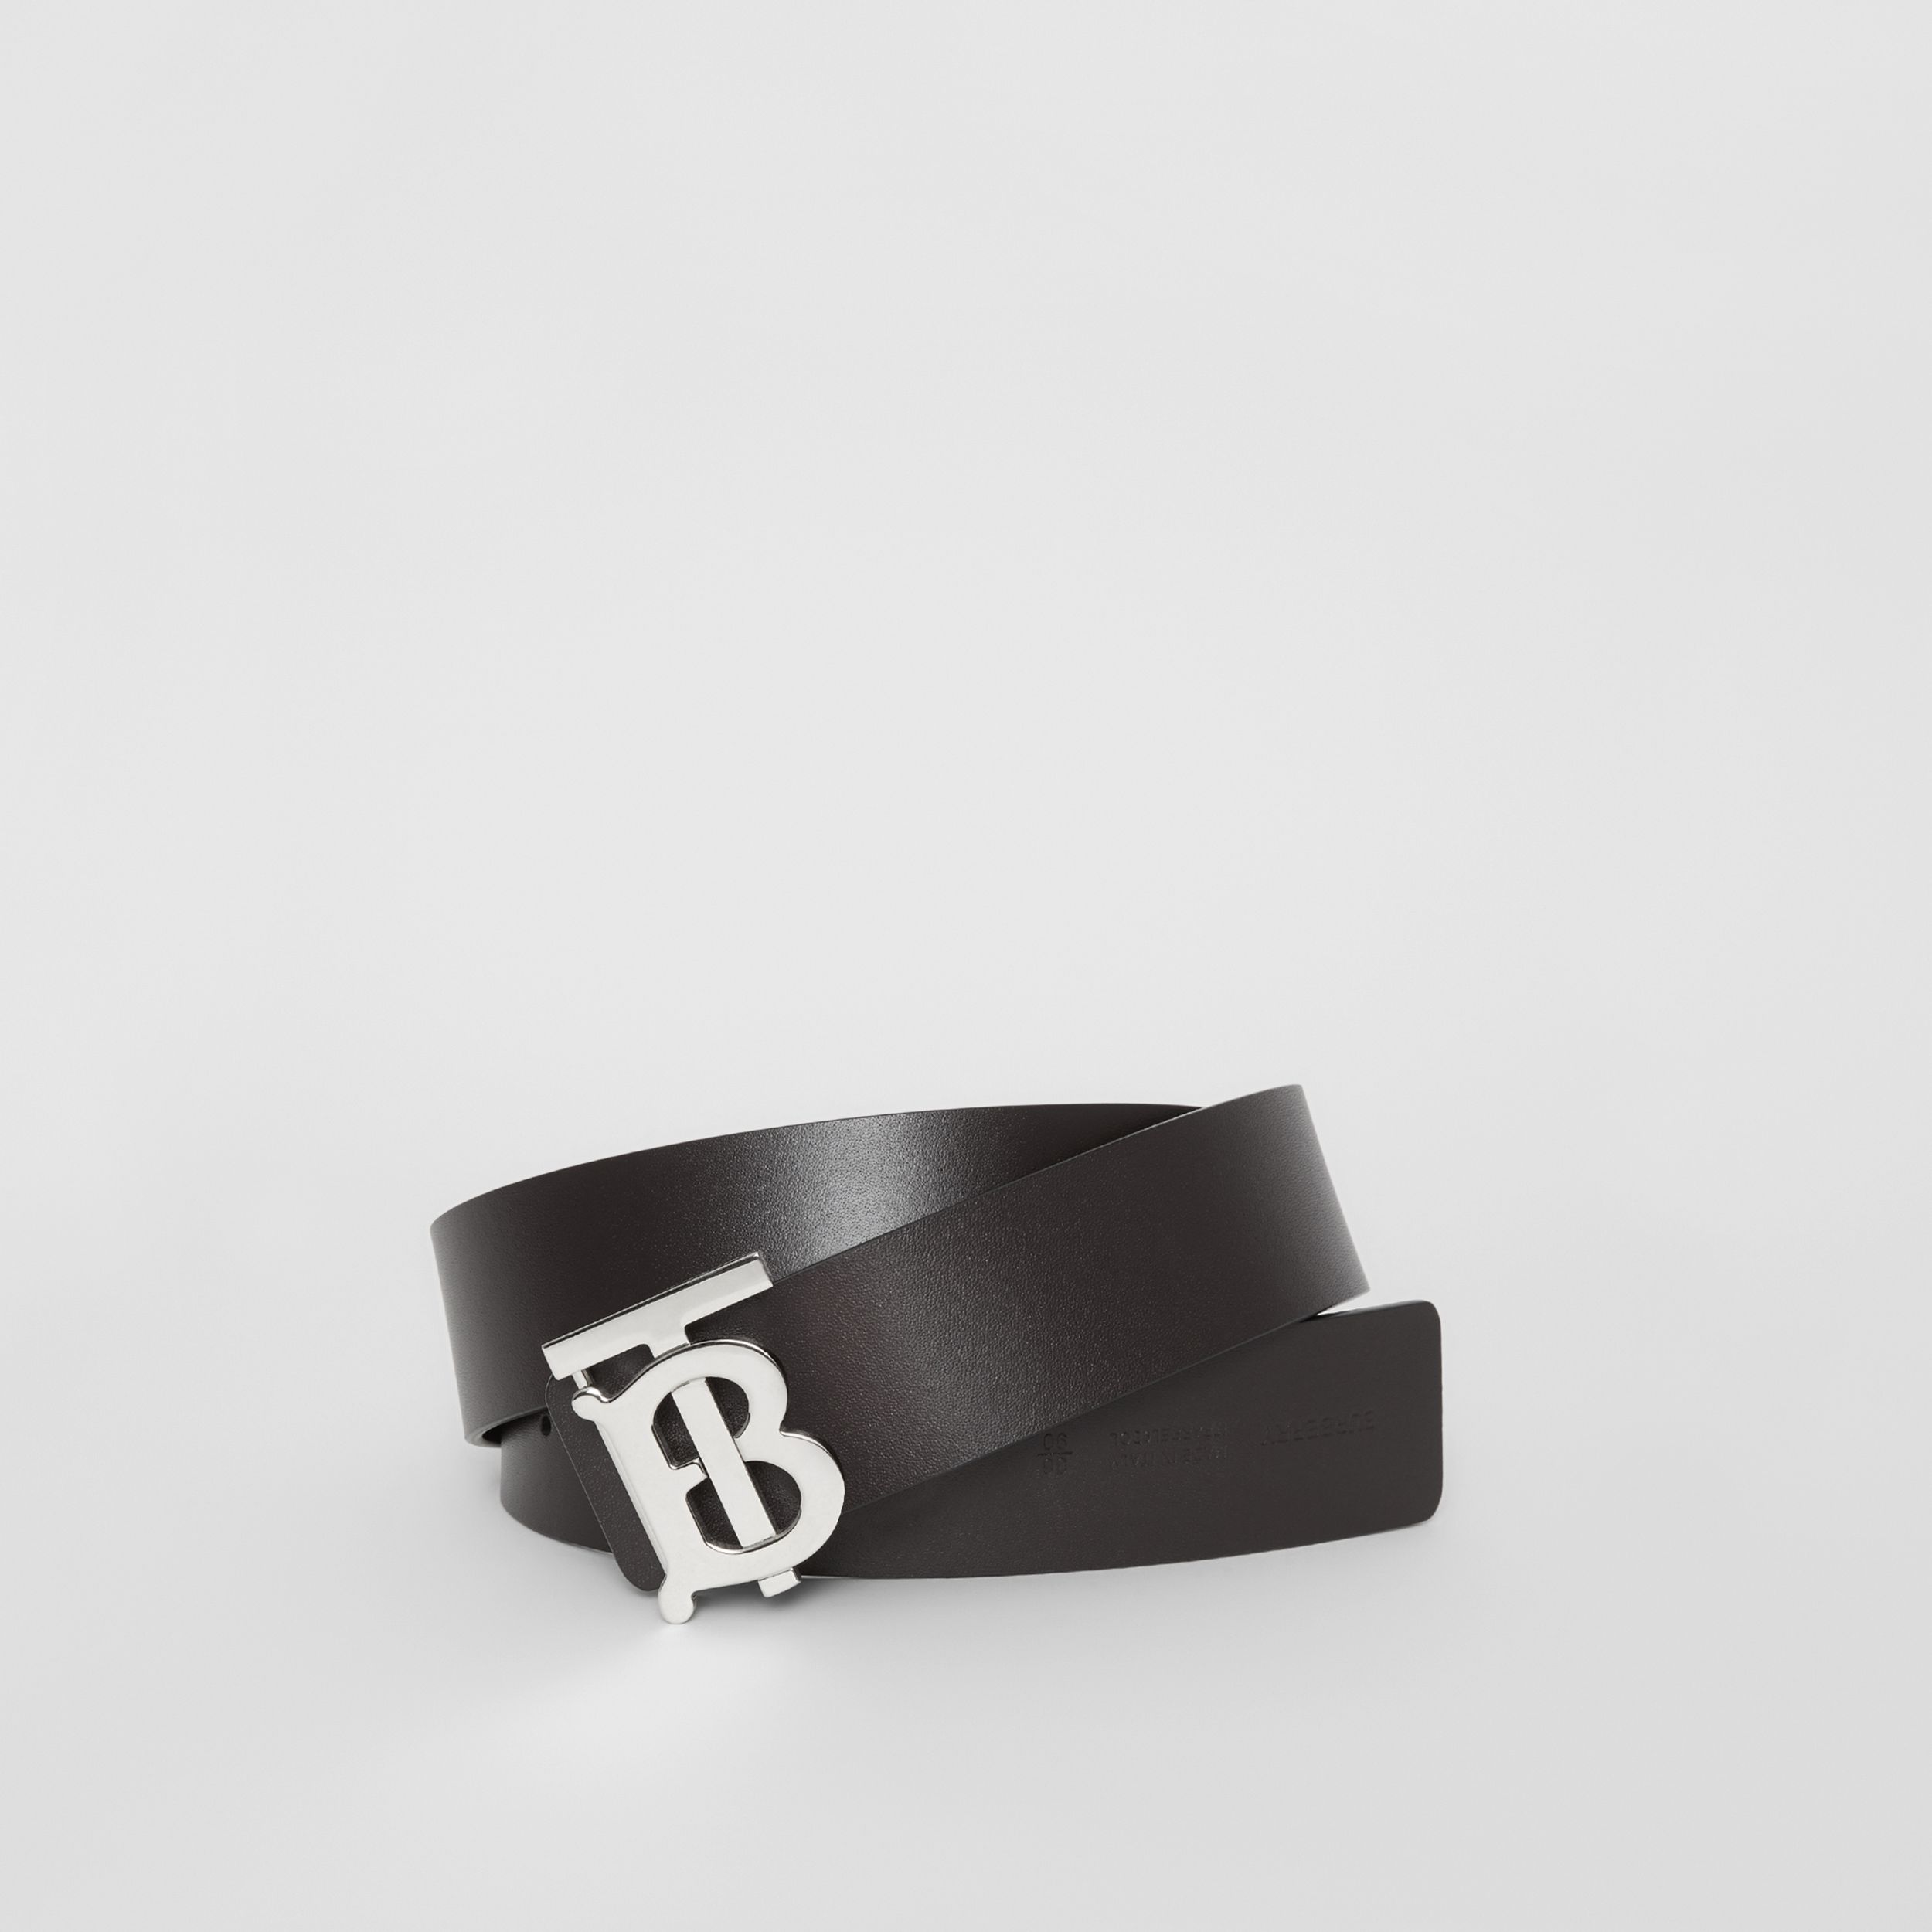 Reversible Monogram Motif Leather Belt in Black/malt Brown | Burberry Australia - 1